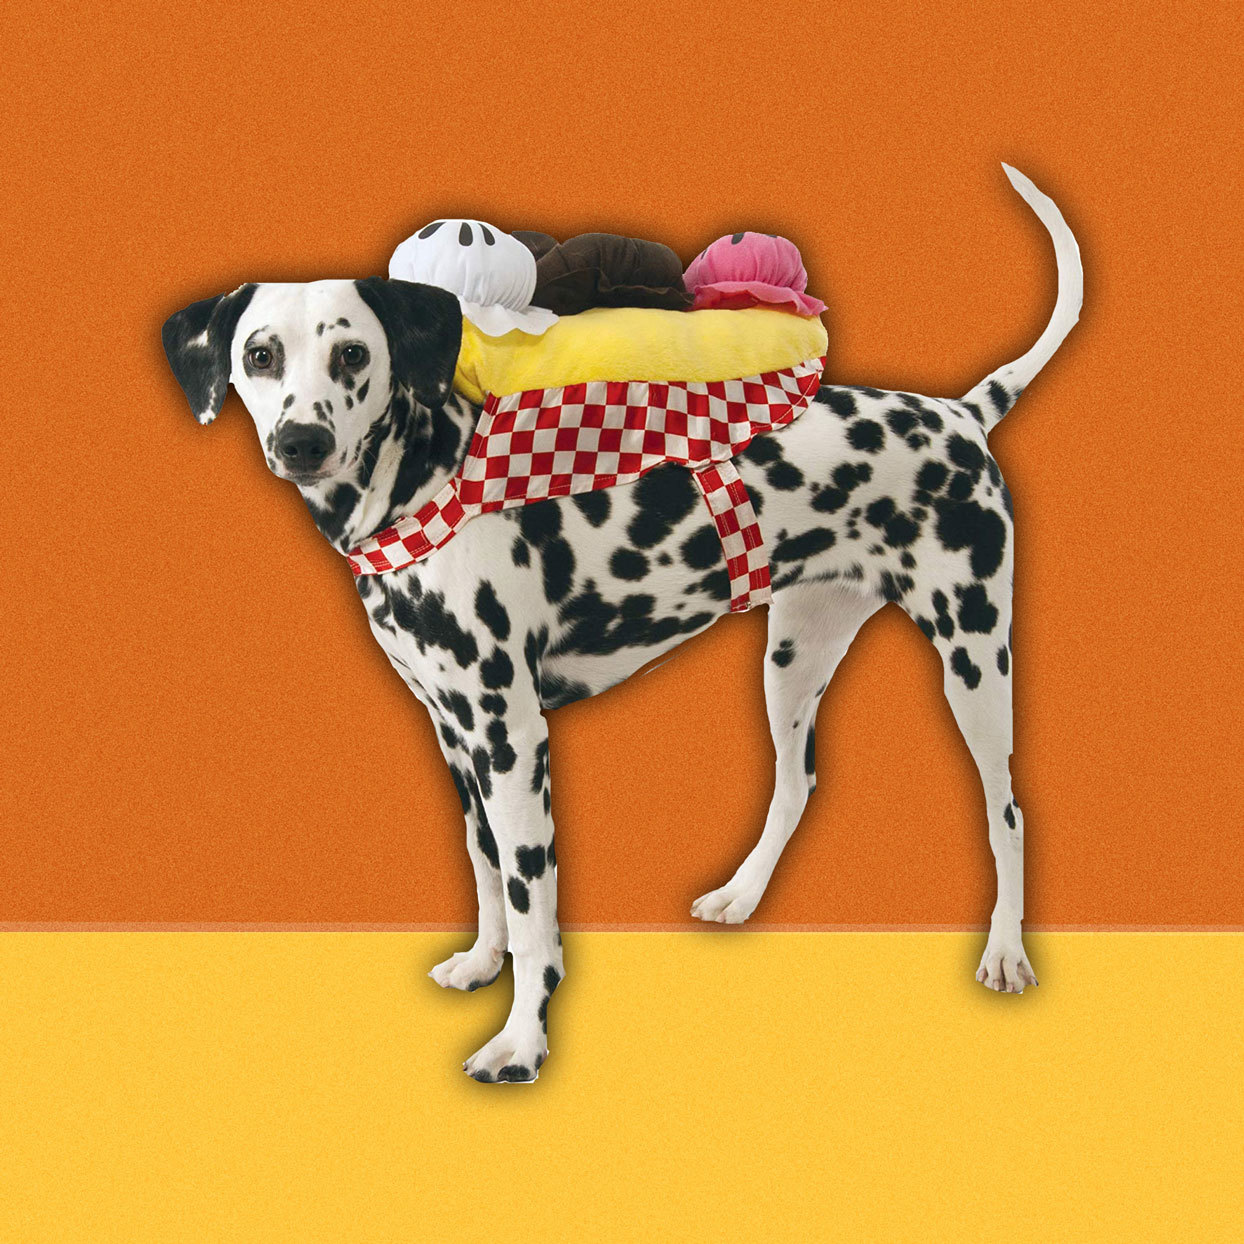 This Halloween costume for the dog is every bit as extra as you are. This banana split costume comes with a scoop of chocolate, vanilla and strawberry ice cream (plush, of course), making your pet the cutest ice cream sundae in town.Prices starting at $14.92